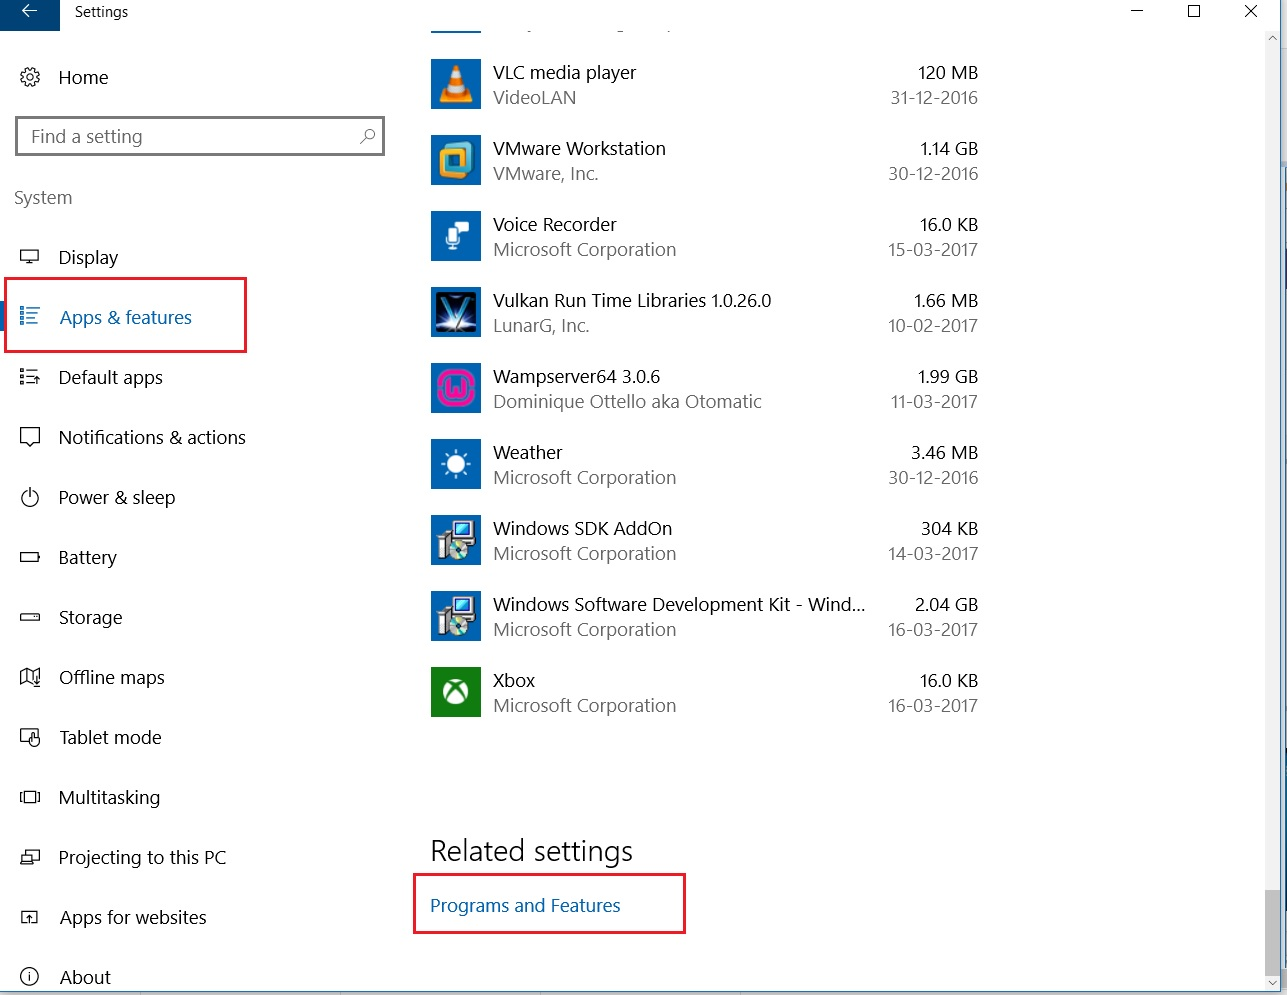 Windows 10 settings apps and features dialogbox screenshot